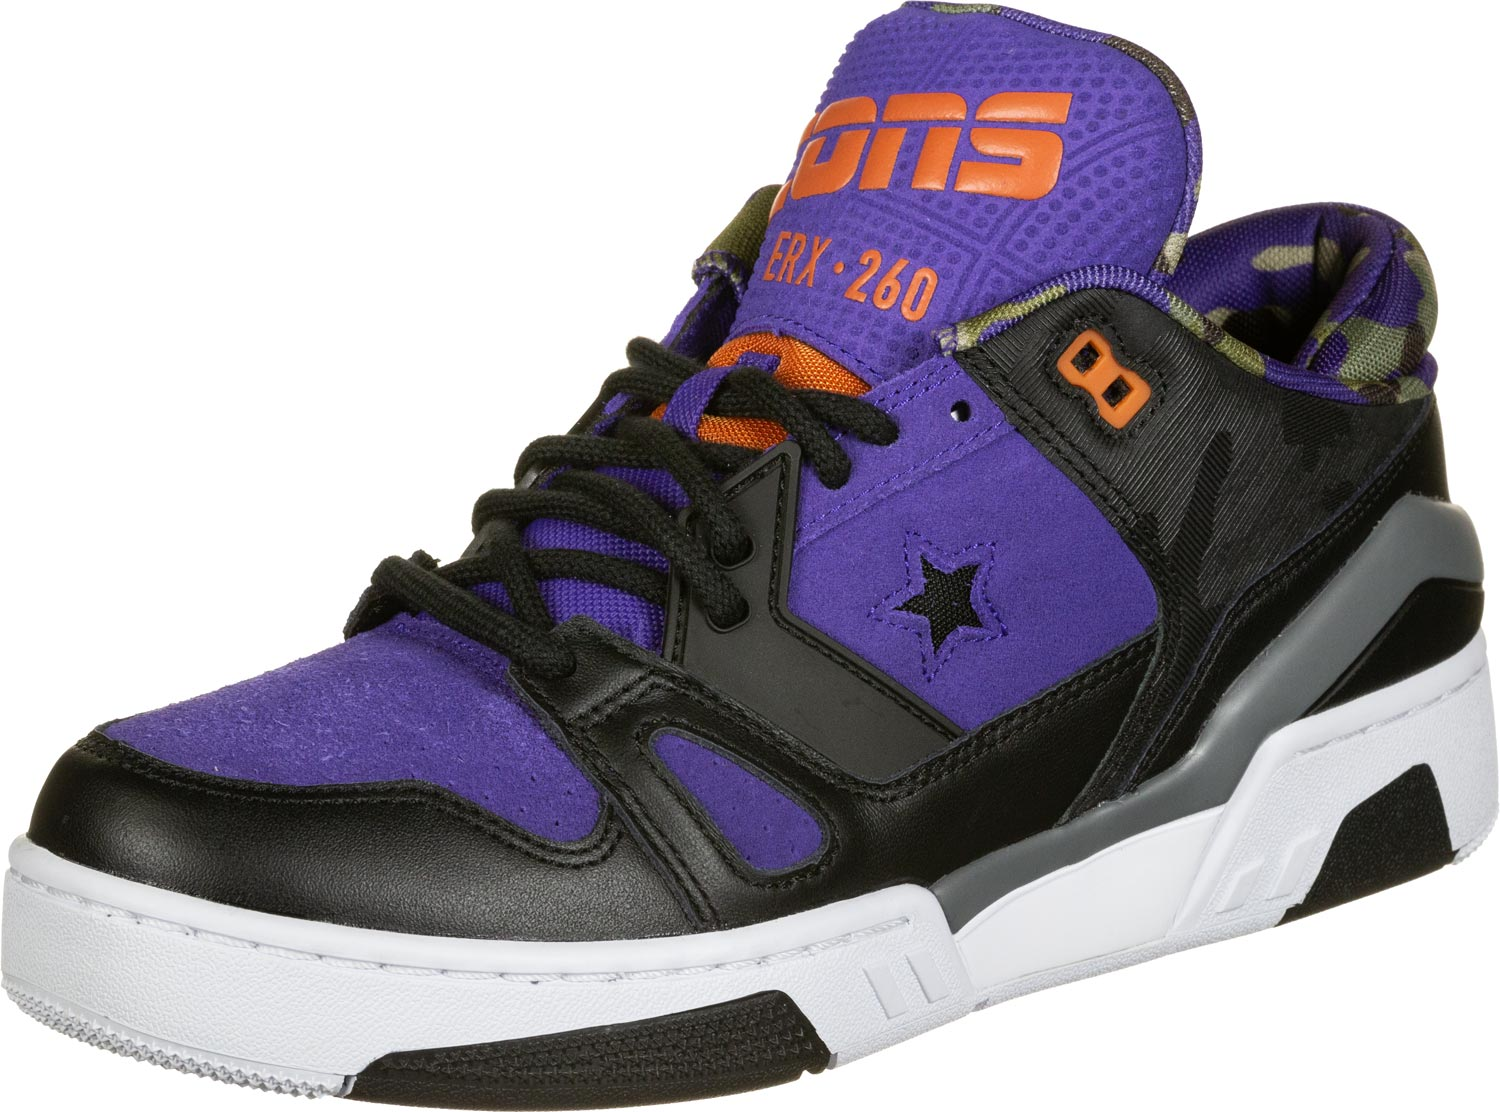 Converse ERX 260 Camo and Leather Ox